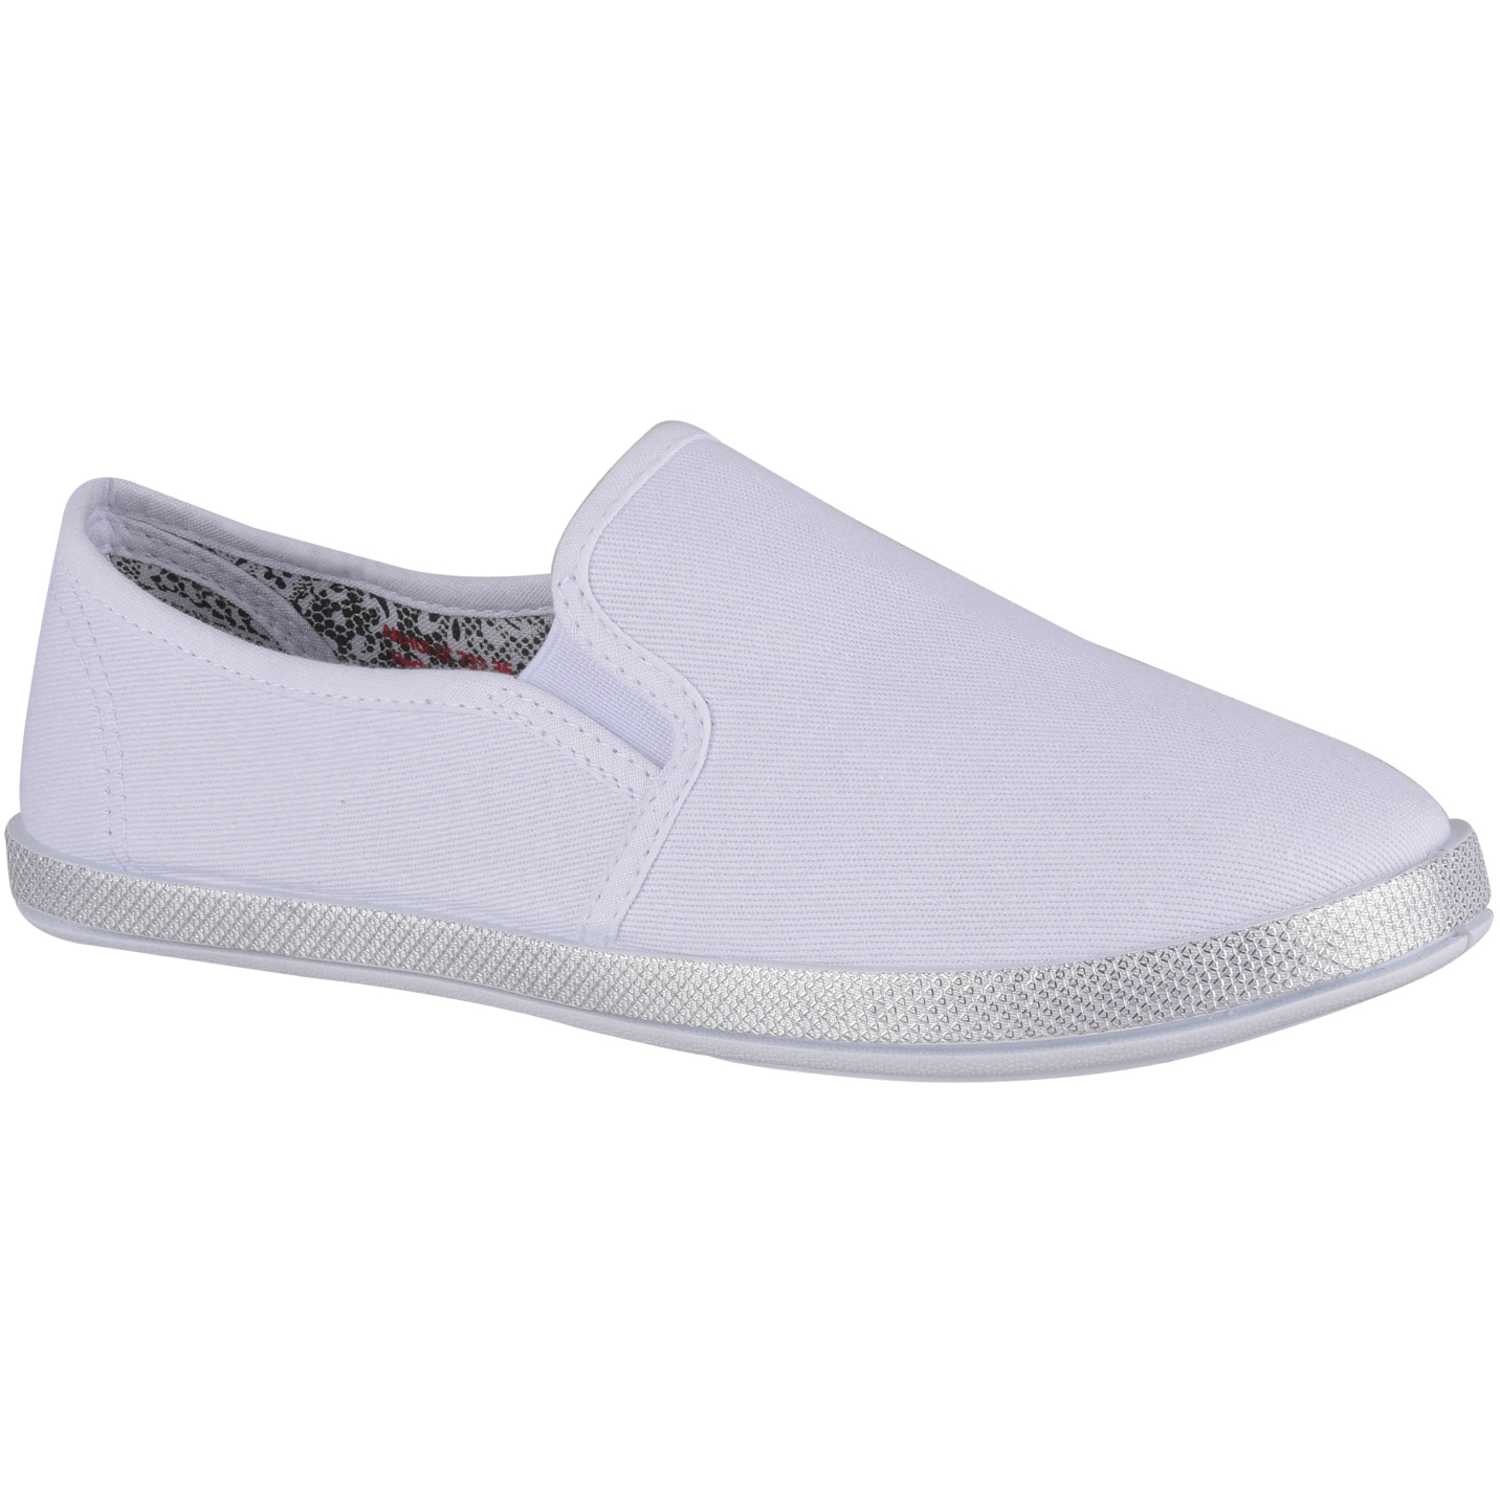 Platanitos zc 733 Blanco Zapatillas Fashion